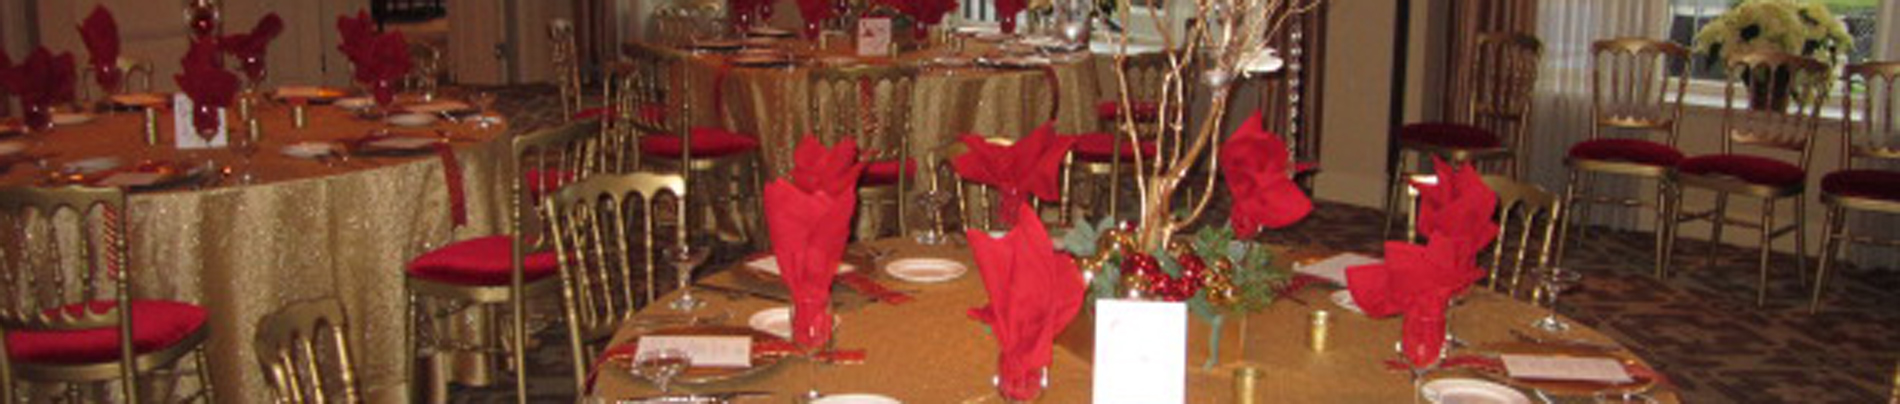 Red napkins on a table with gold cloth.